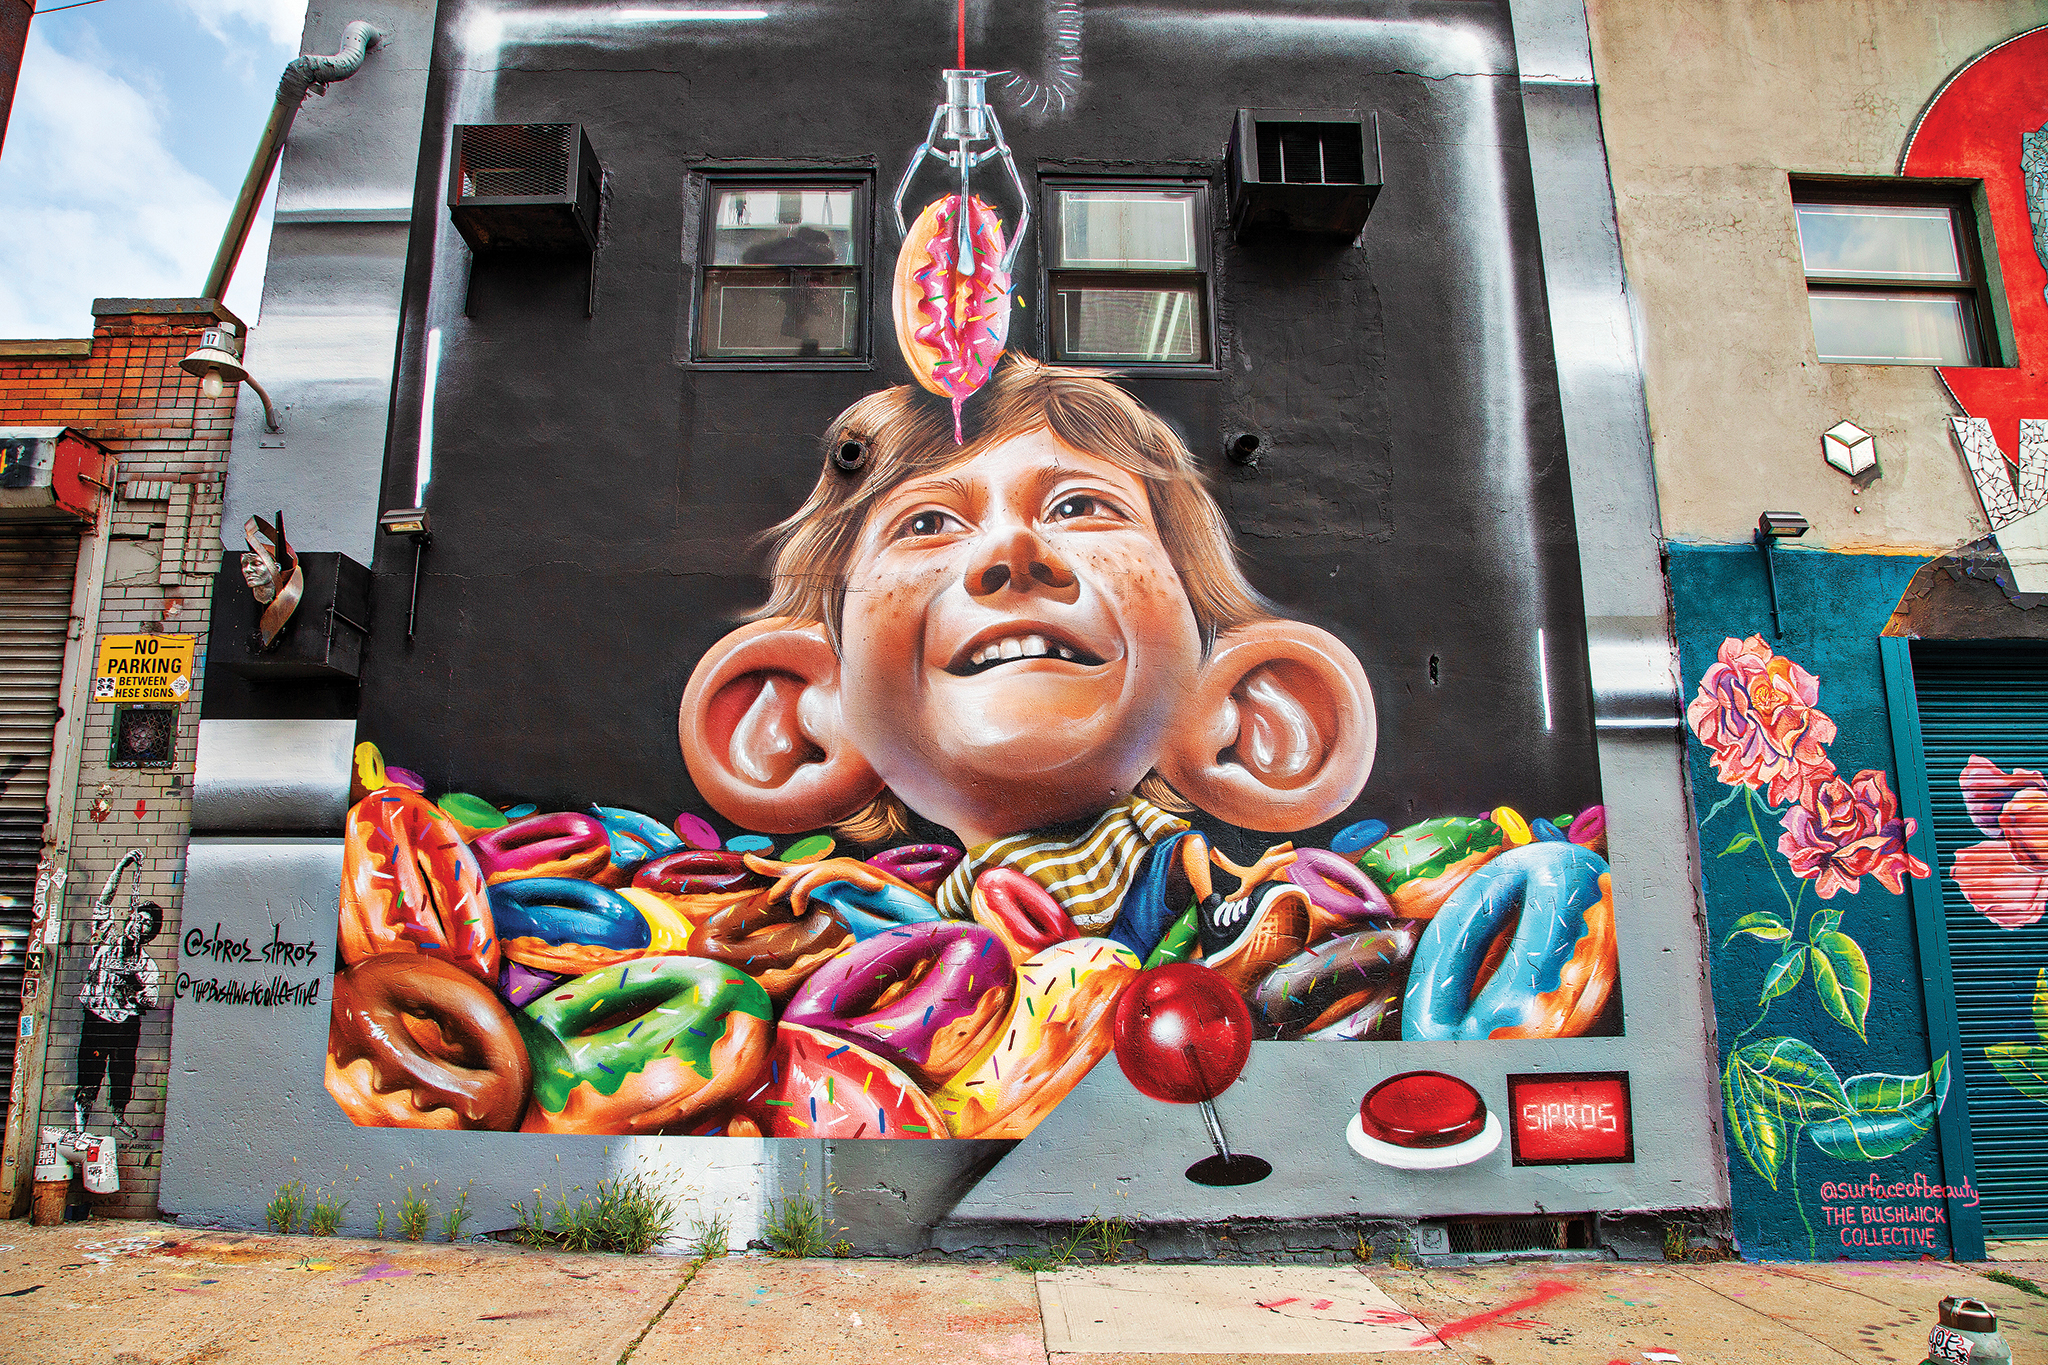 Best Graffiti in NYC to See From Street Art Murals to Bubble